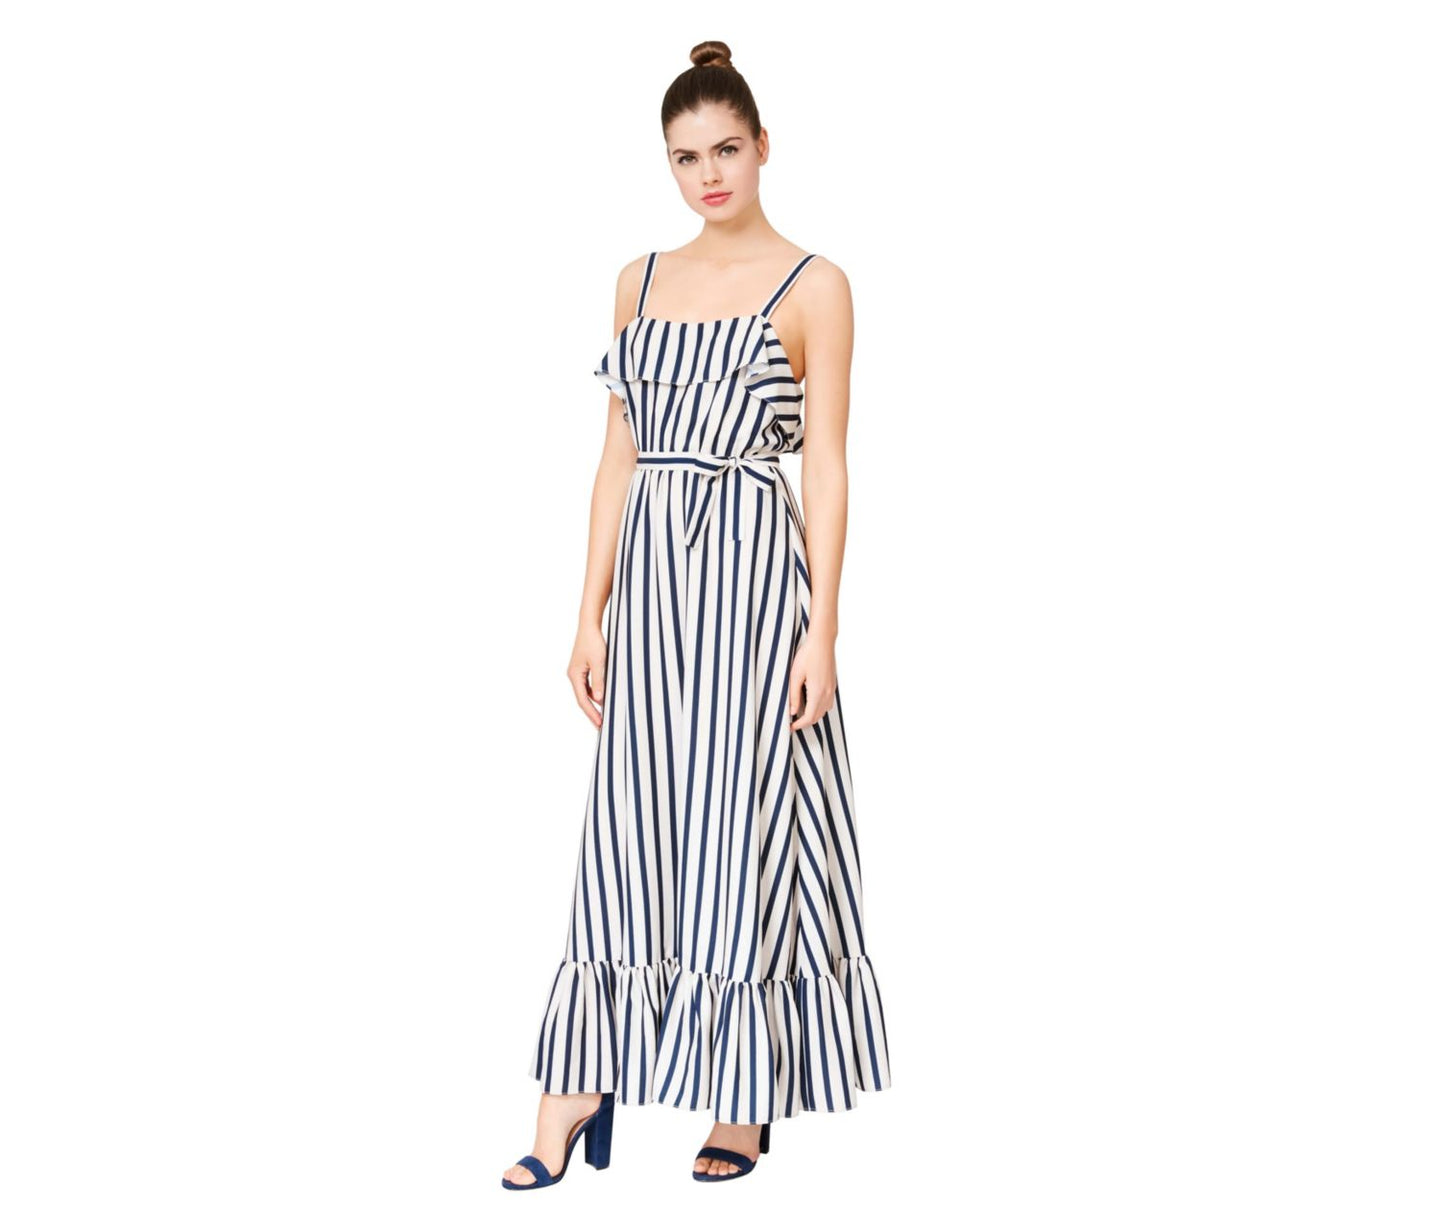 LONG LINES RUFFLED MAXI SUNDRESS BLACK-WHITE - APPAREL - Betsey Johnson